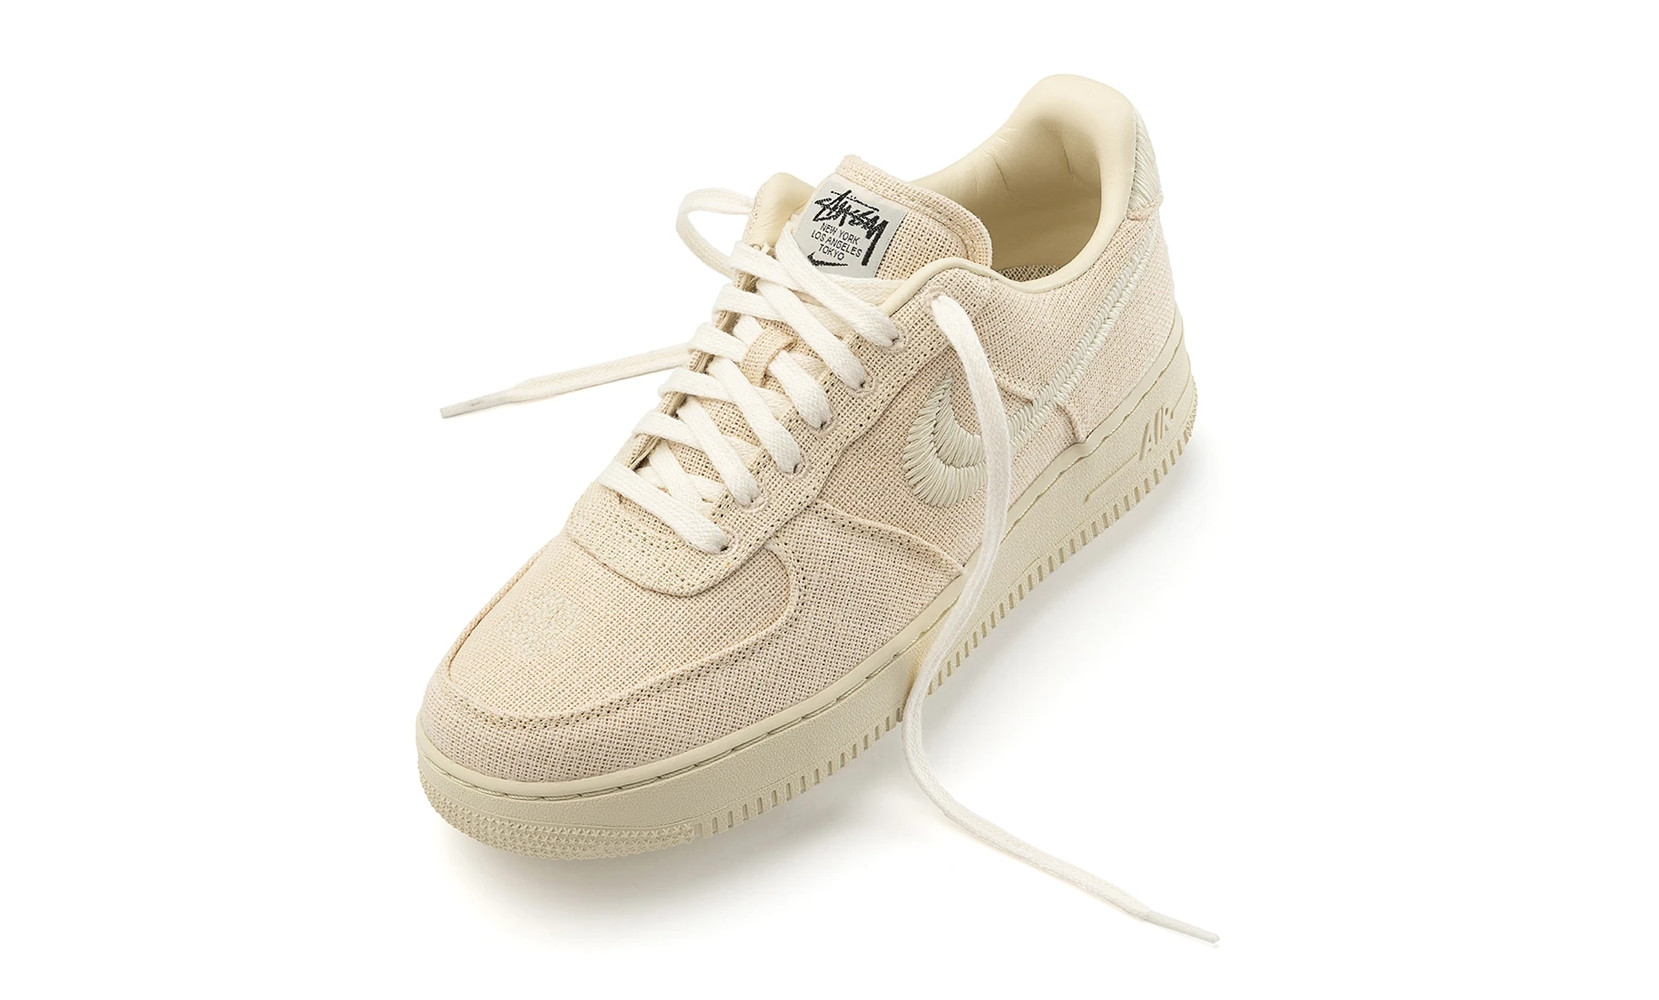 stussy x nike air force 1 fossil